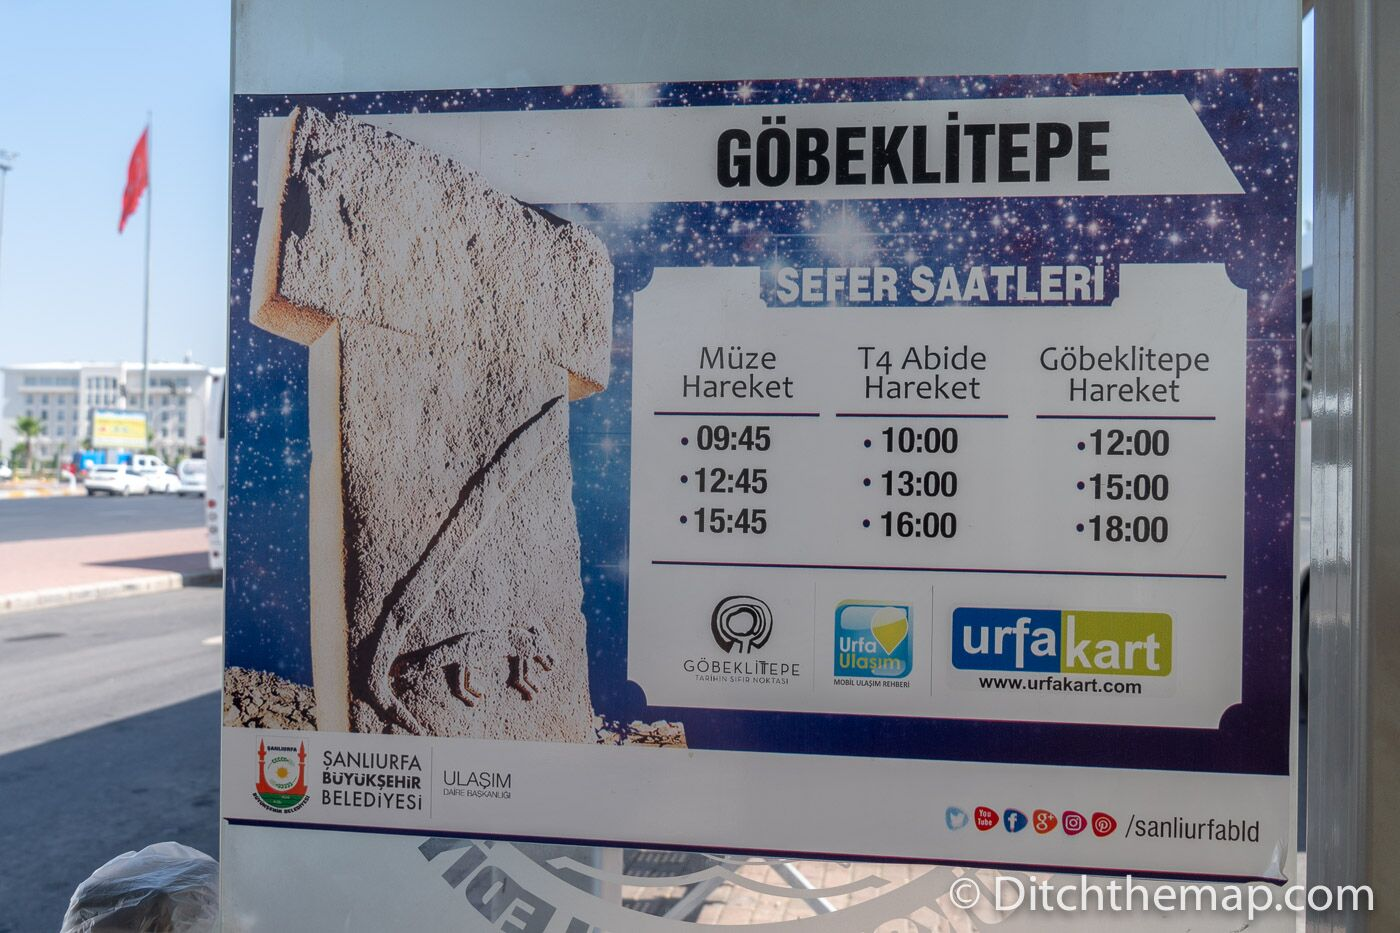 The bus schedule for Göbekli Tepe